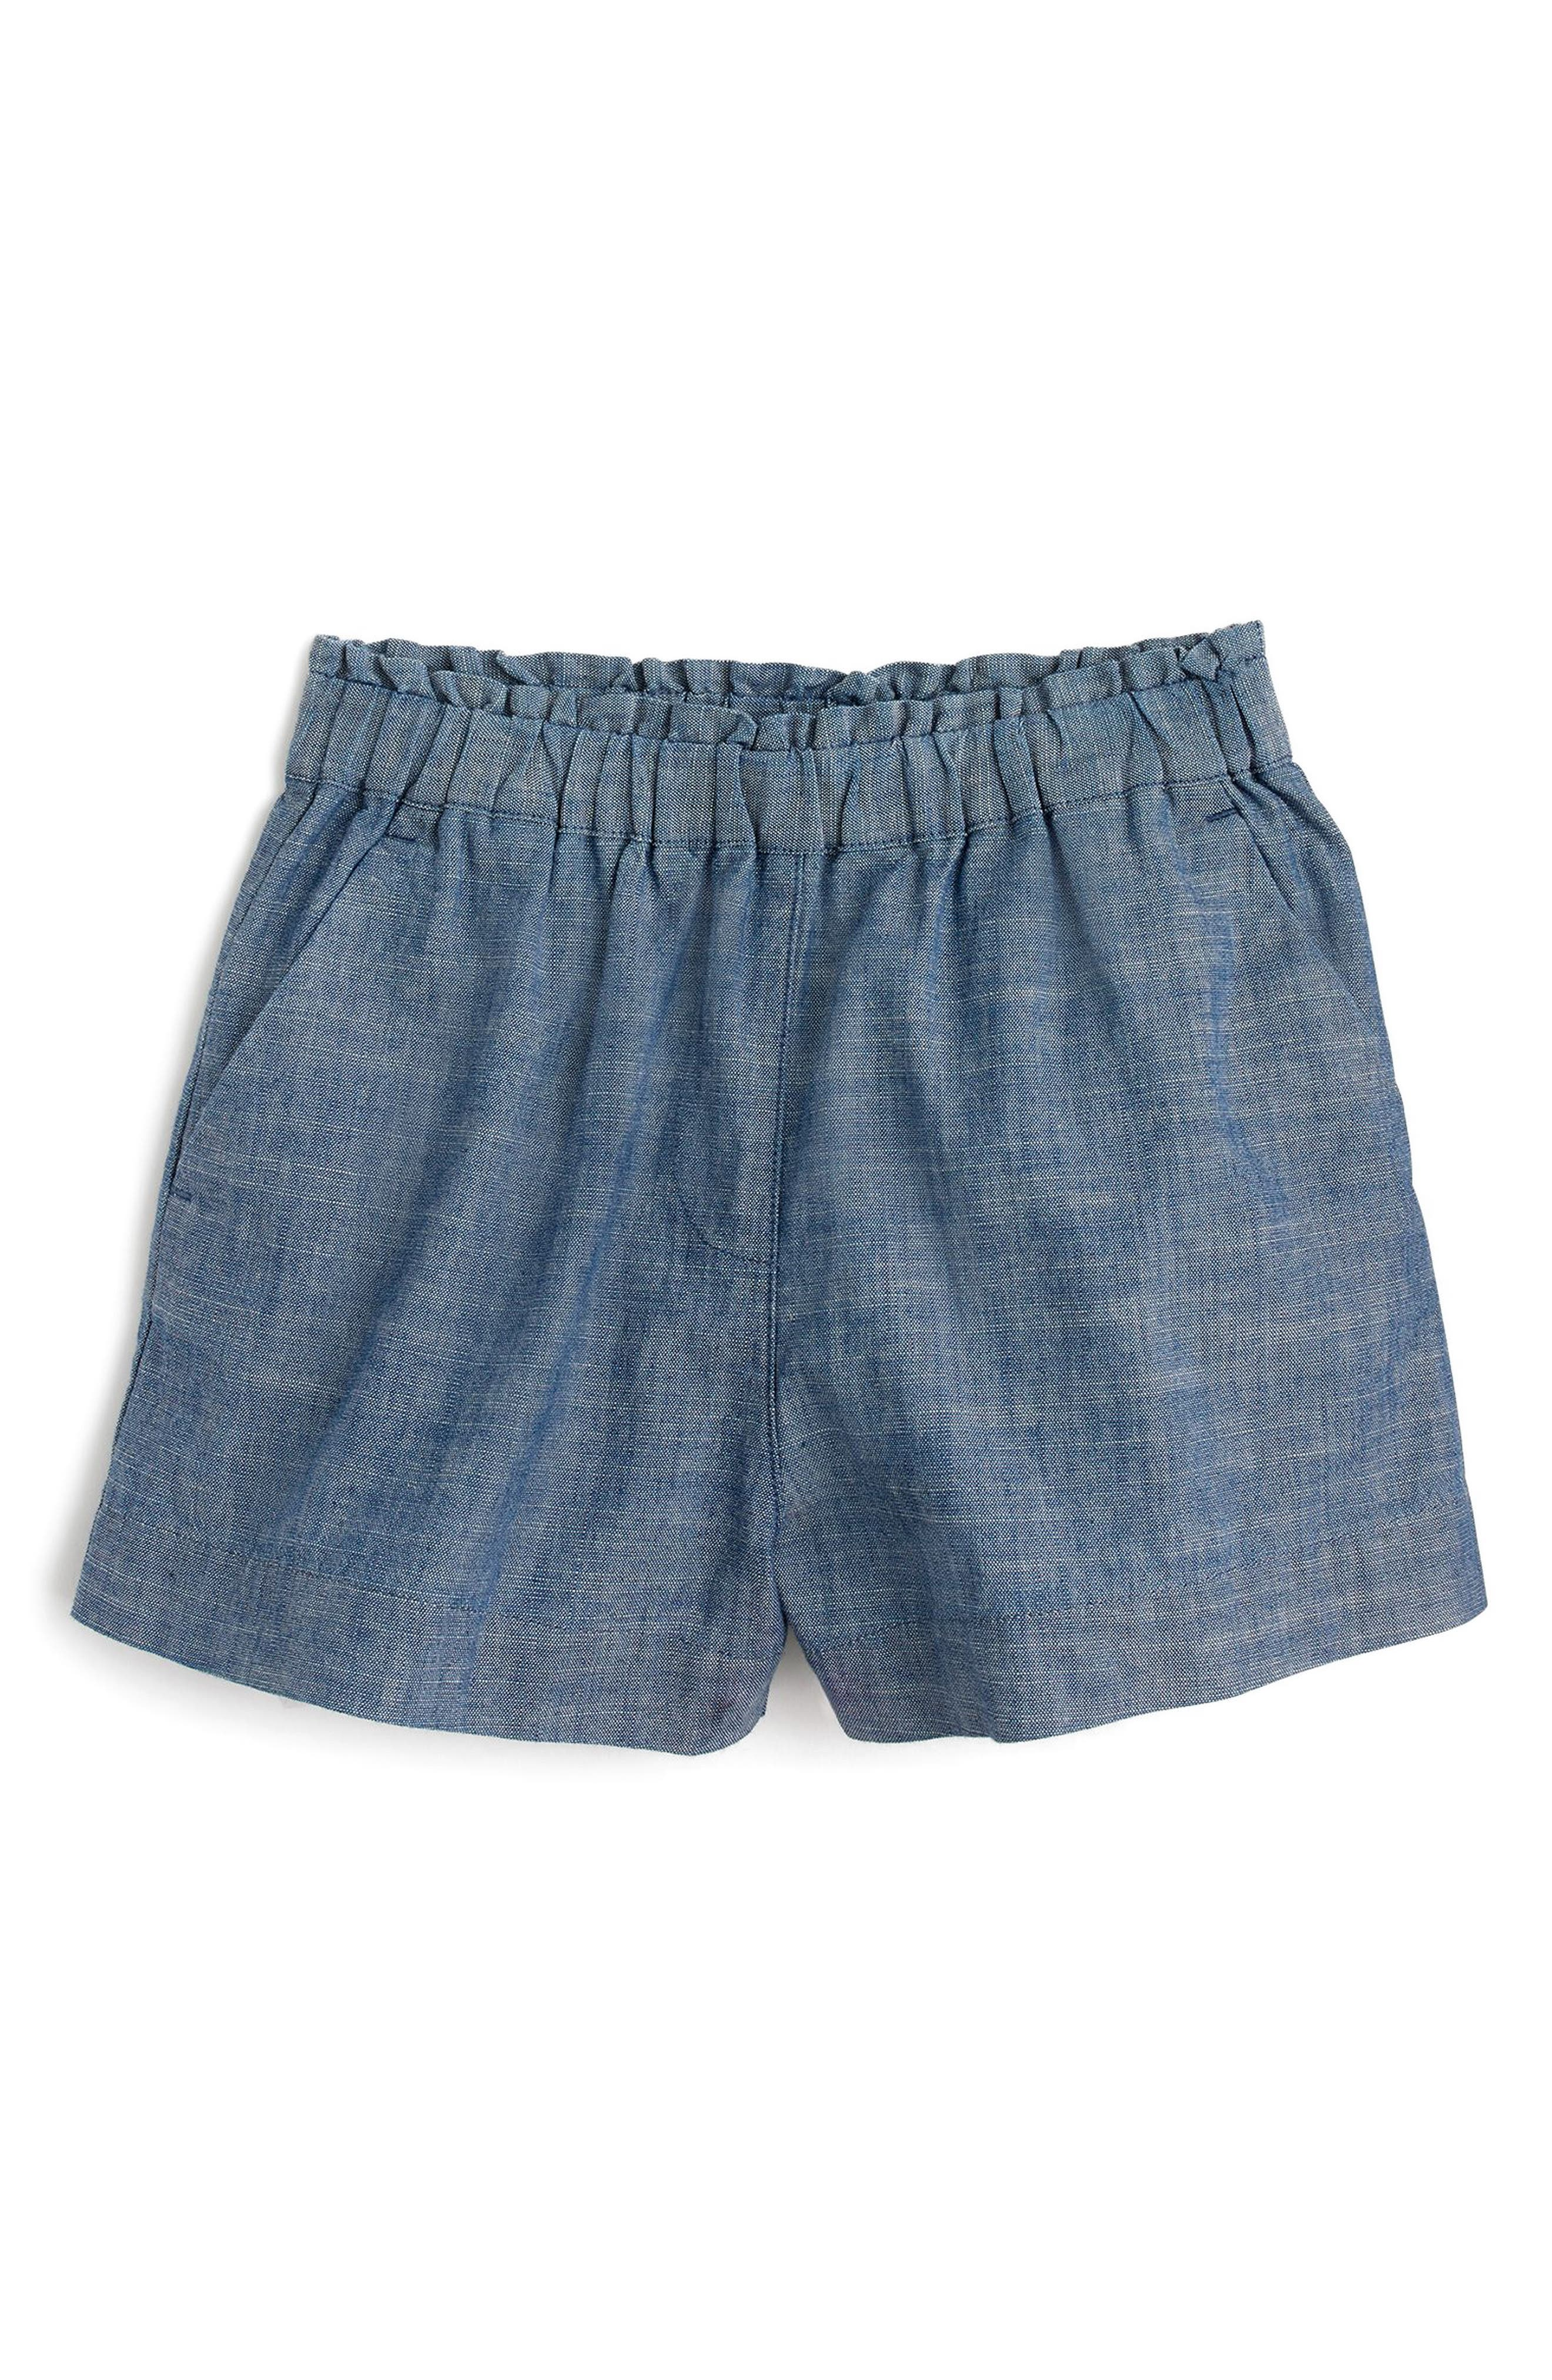 crewcuts by J.Crew Trish Chambray Shorts (Toddler Girls, Little Girls & Big Girls)